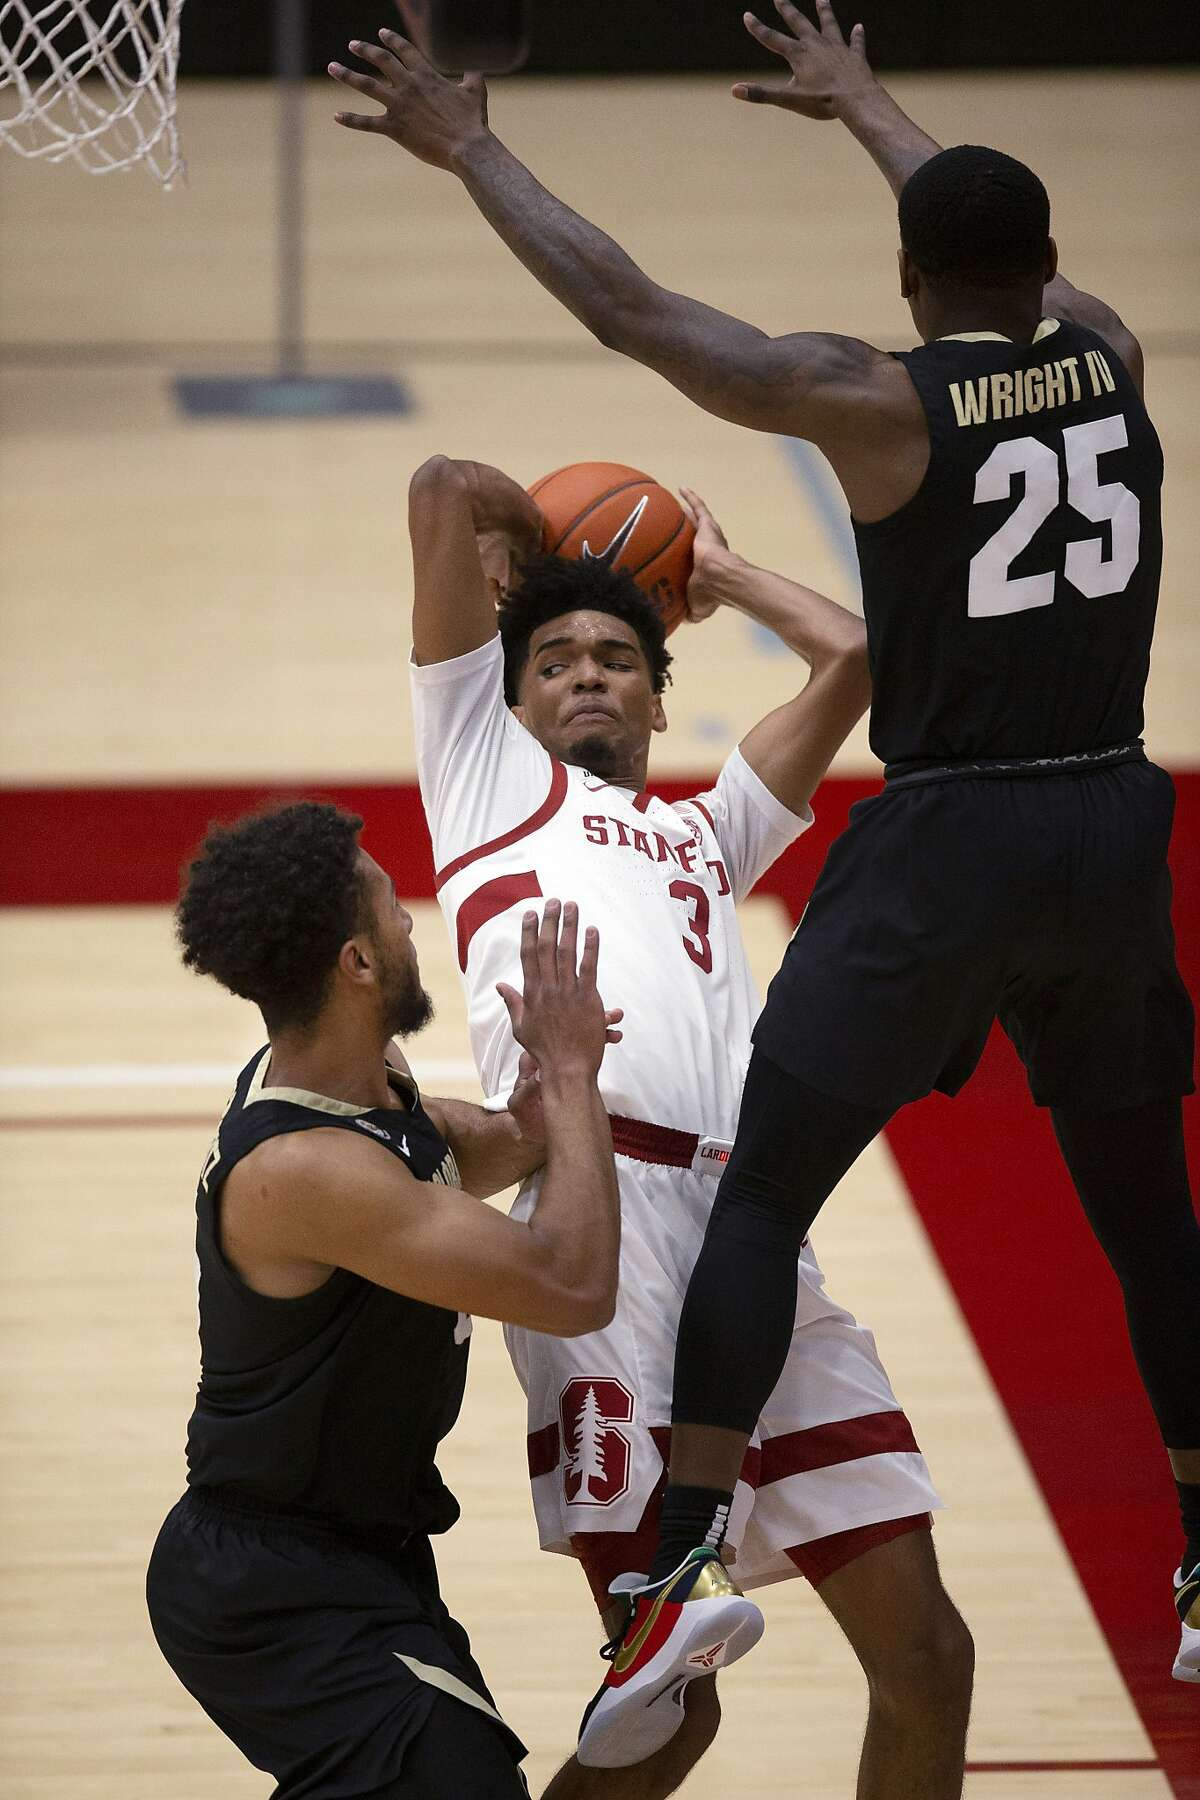 Stanford forward Ziaire Williams (3) looks to pass the ball as Colorado's D'Shawn Schwartz, left, and McKinley Wright IV (25) defend during the first half of an NCAA college basketball game Thursday, Feb. 11, 2021, in Stanford, Calif. (AP Photo/D. Ross Cameron)